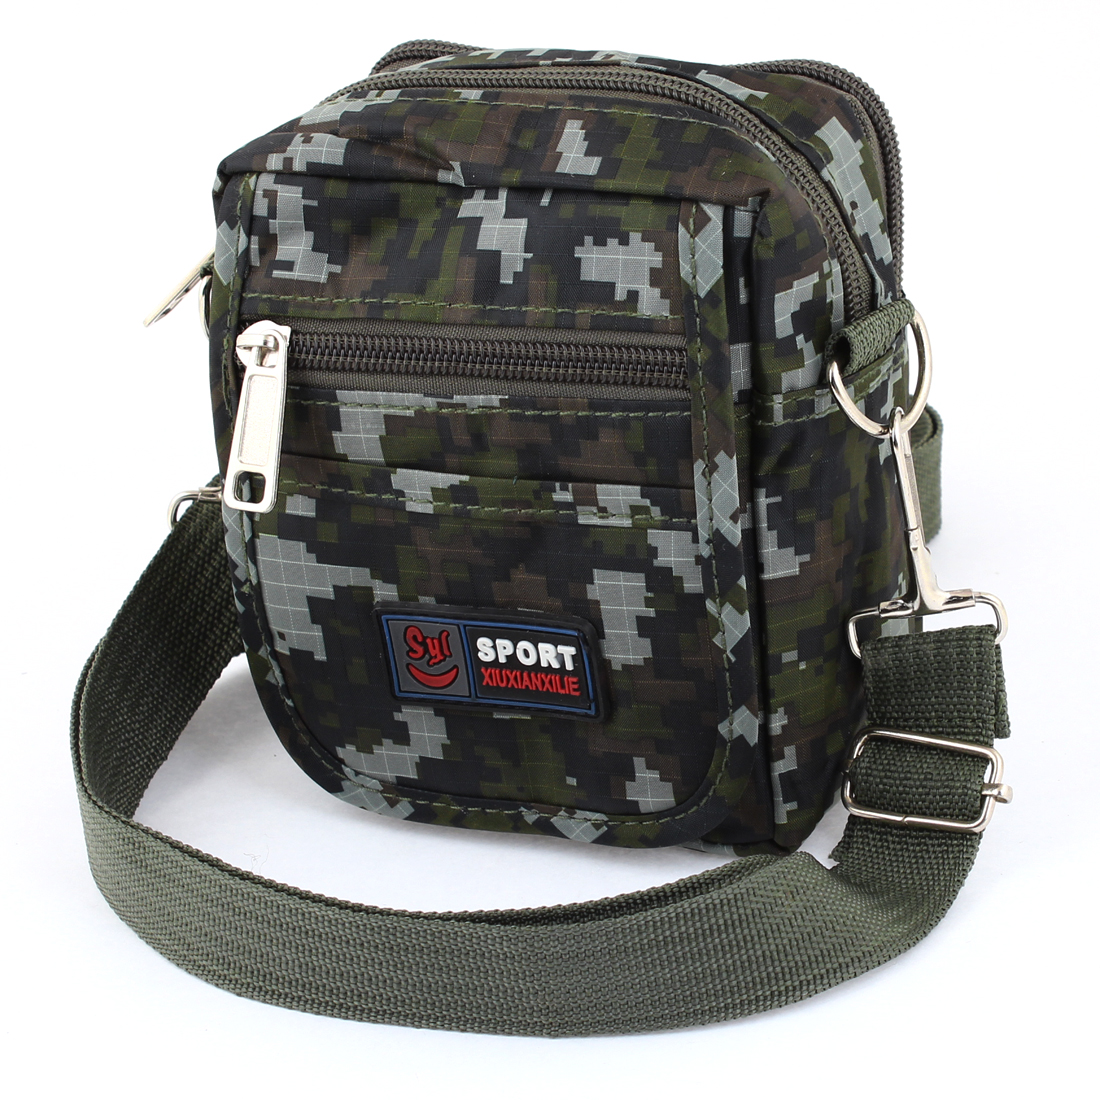 Multilayer Dark Green Camouflage Pattern Zipper Closure Waist Pack Bag for Men